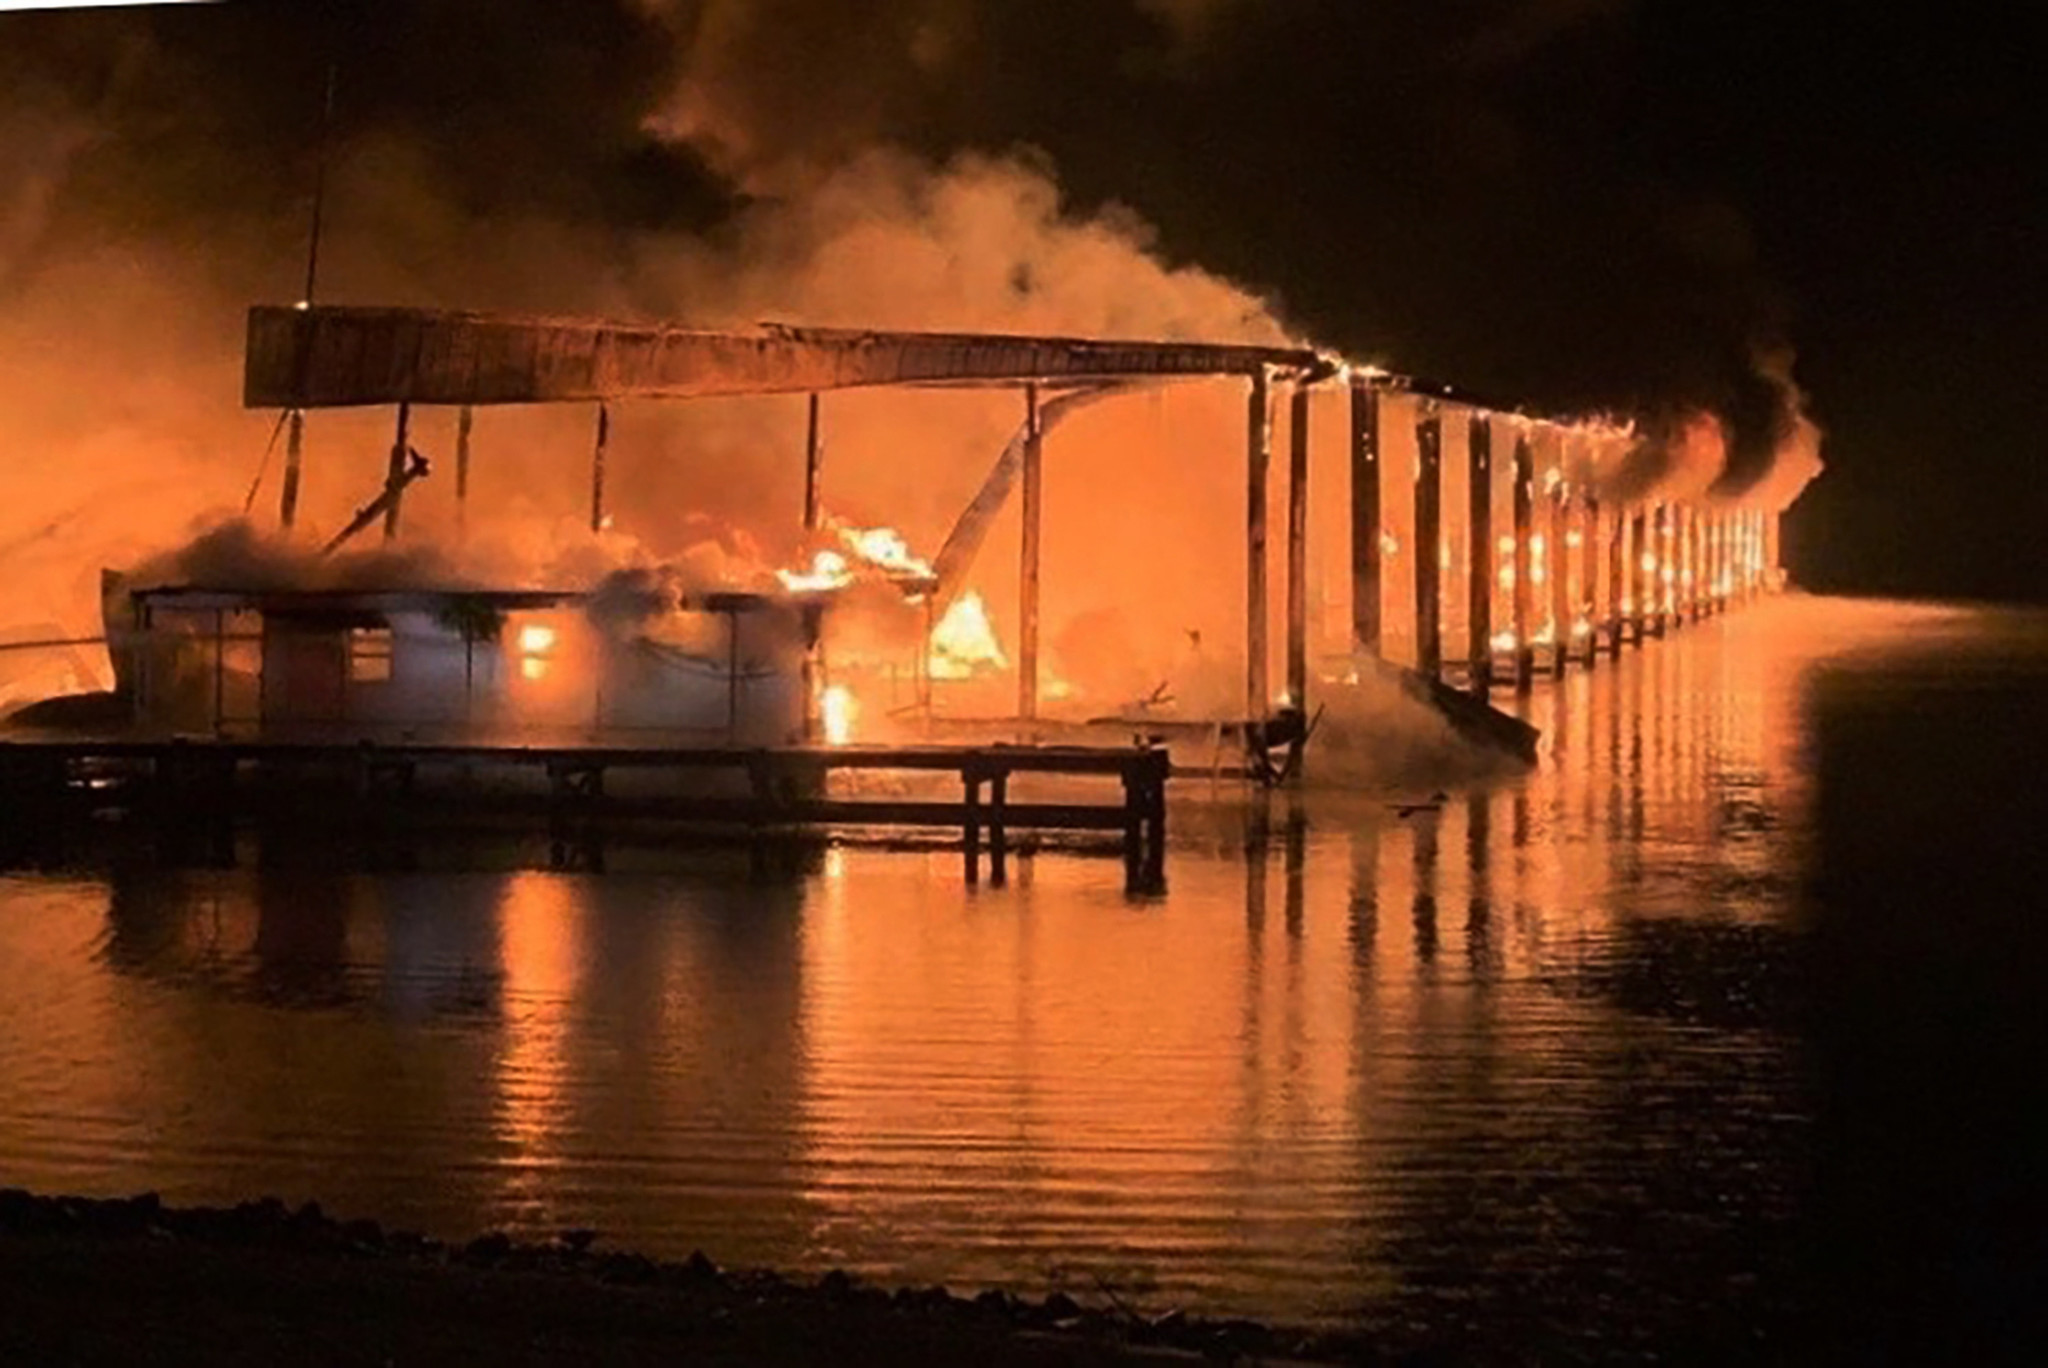 At least four victims killed in Alabama boat dock fire were 16 or younger